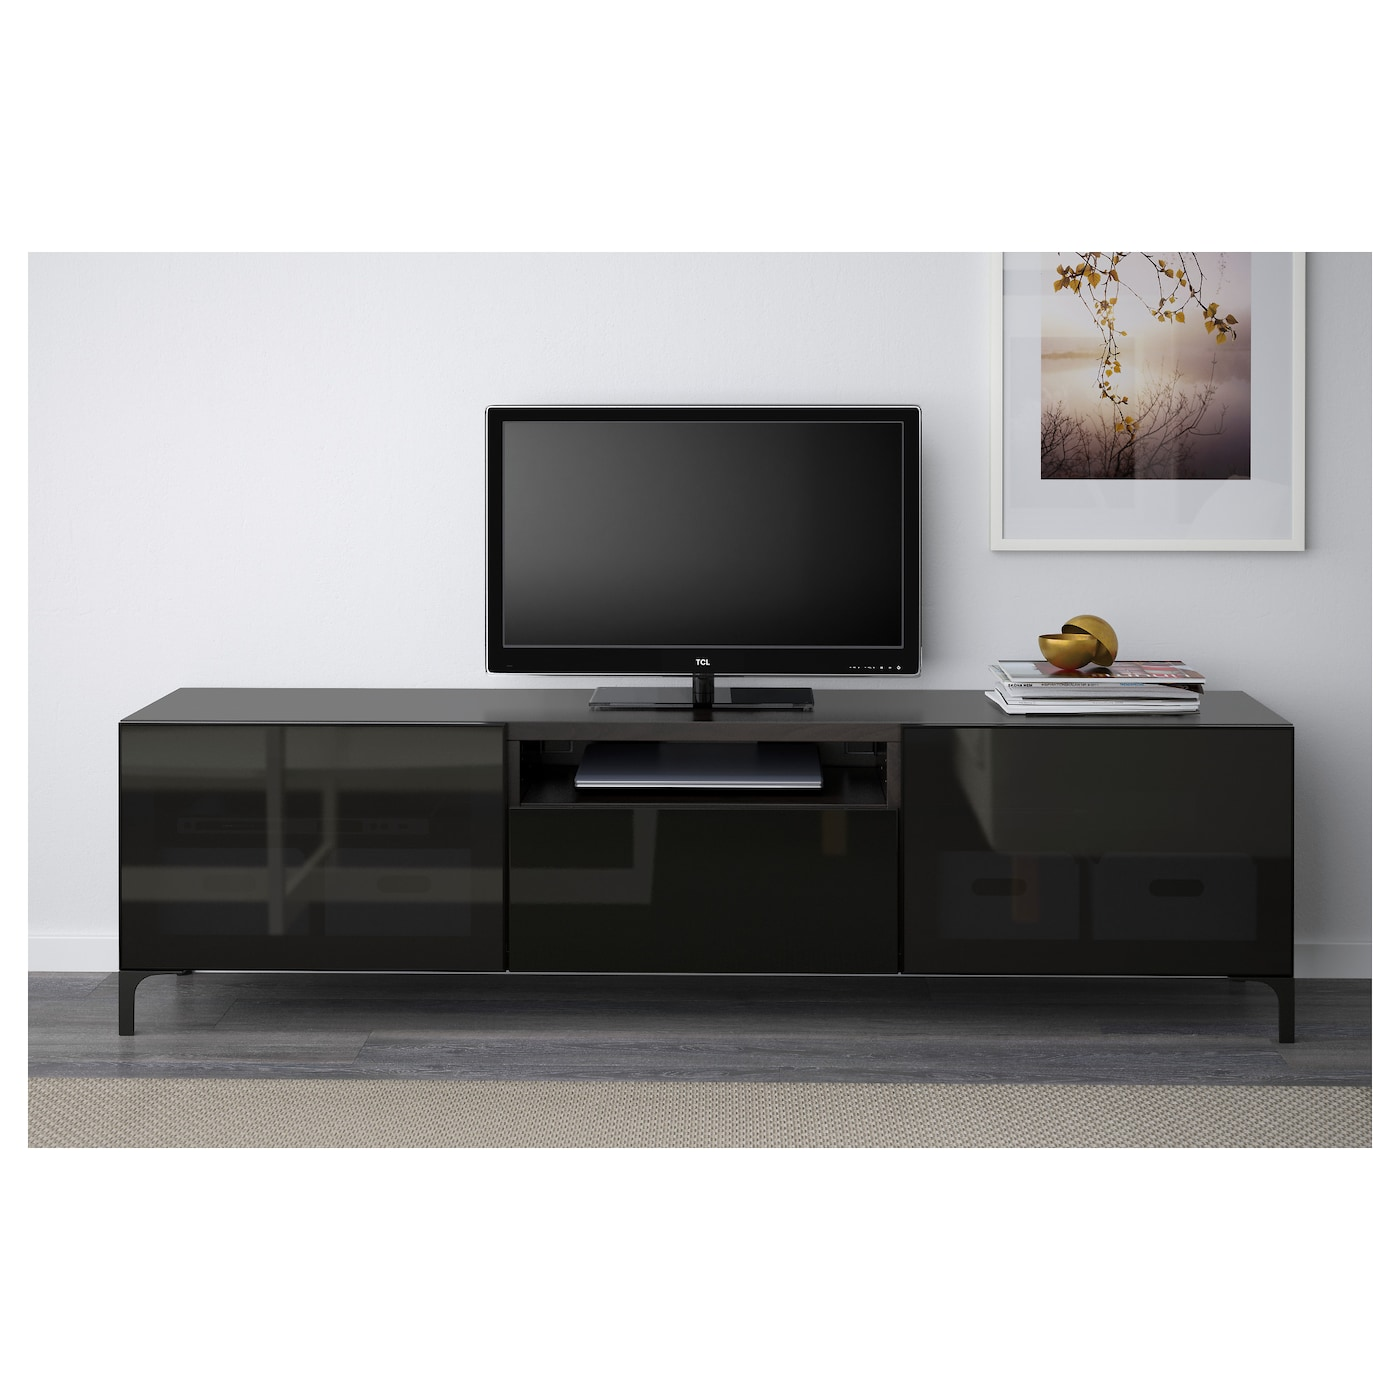 best tv bench black brown selsviken high gloss black smoked glass 180 x 40 x 48 cm ikea. Black Bedroom Furniture Sets. Home Design Ideas